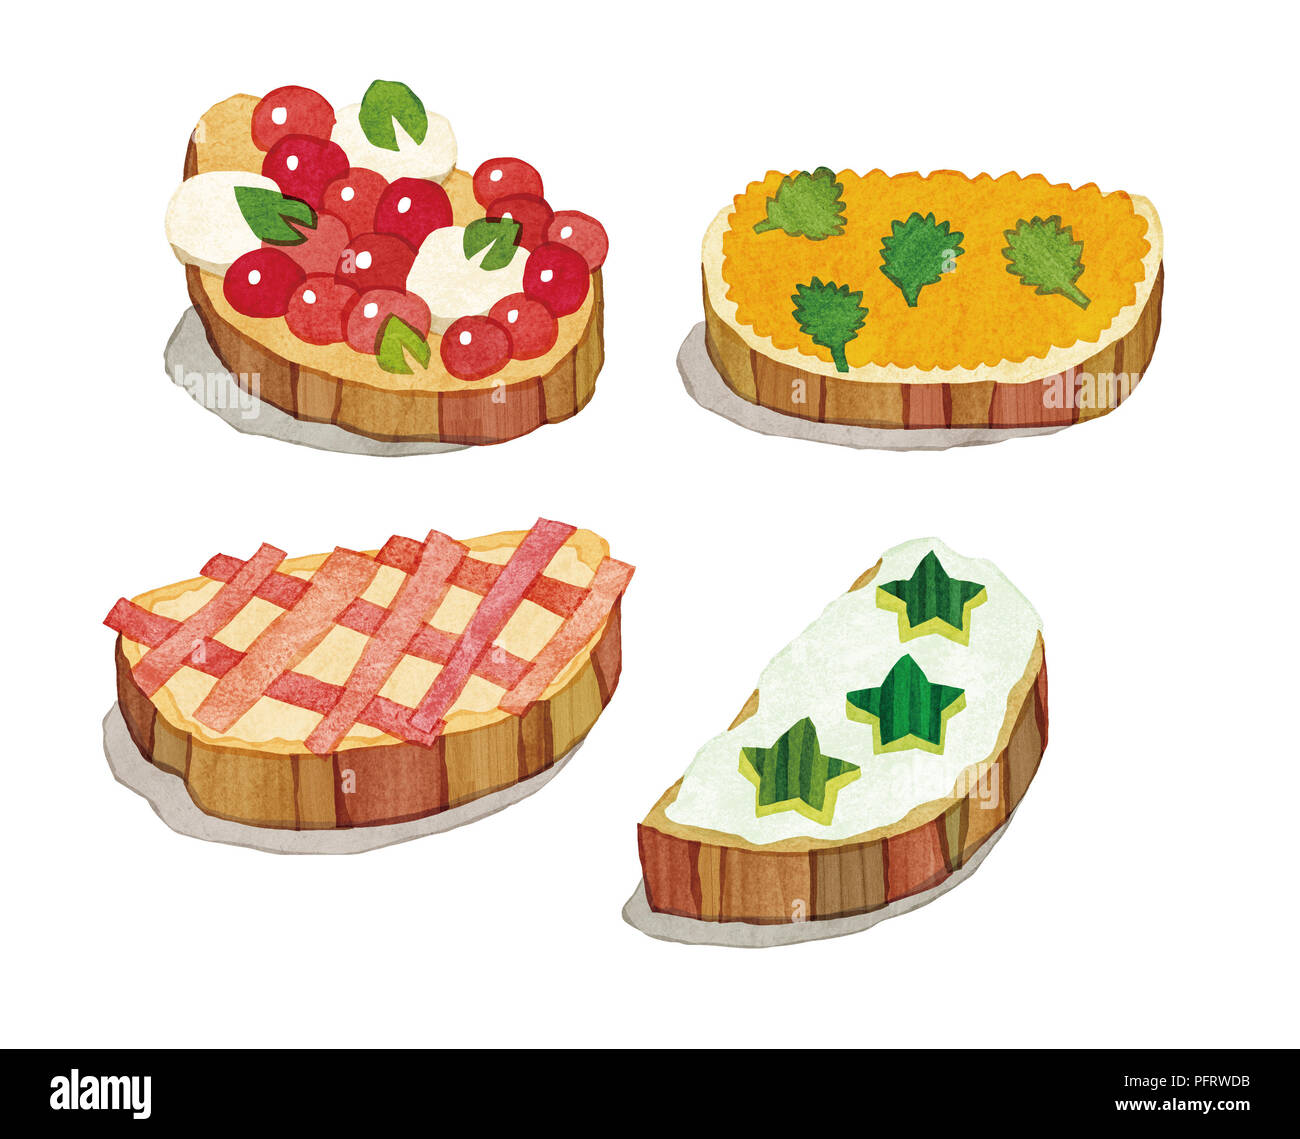 Illustration, Crostini with different toppings - Stock Image